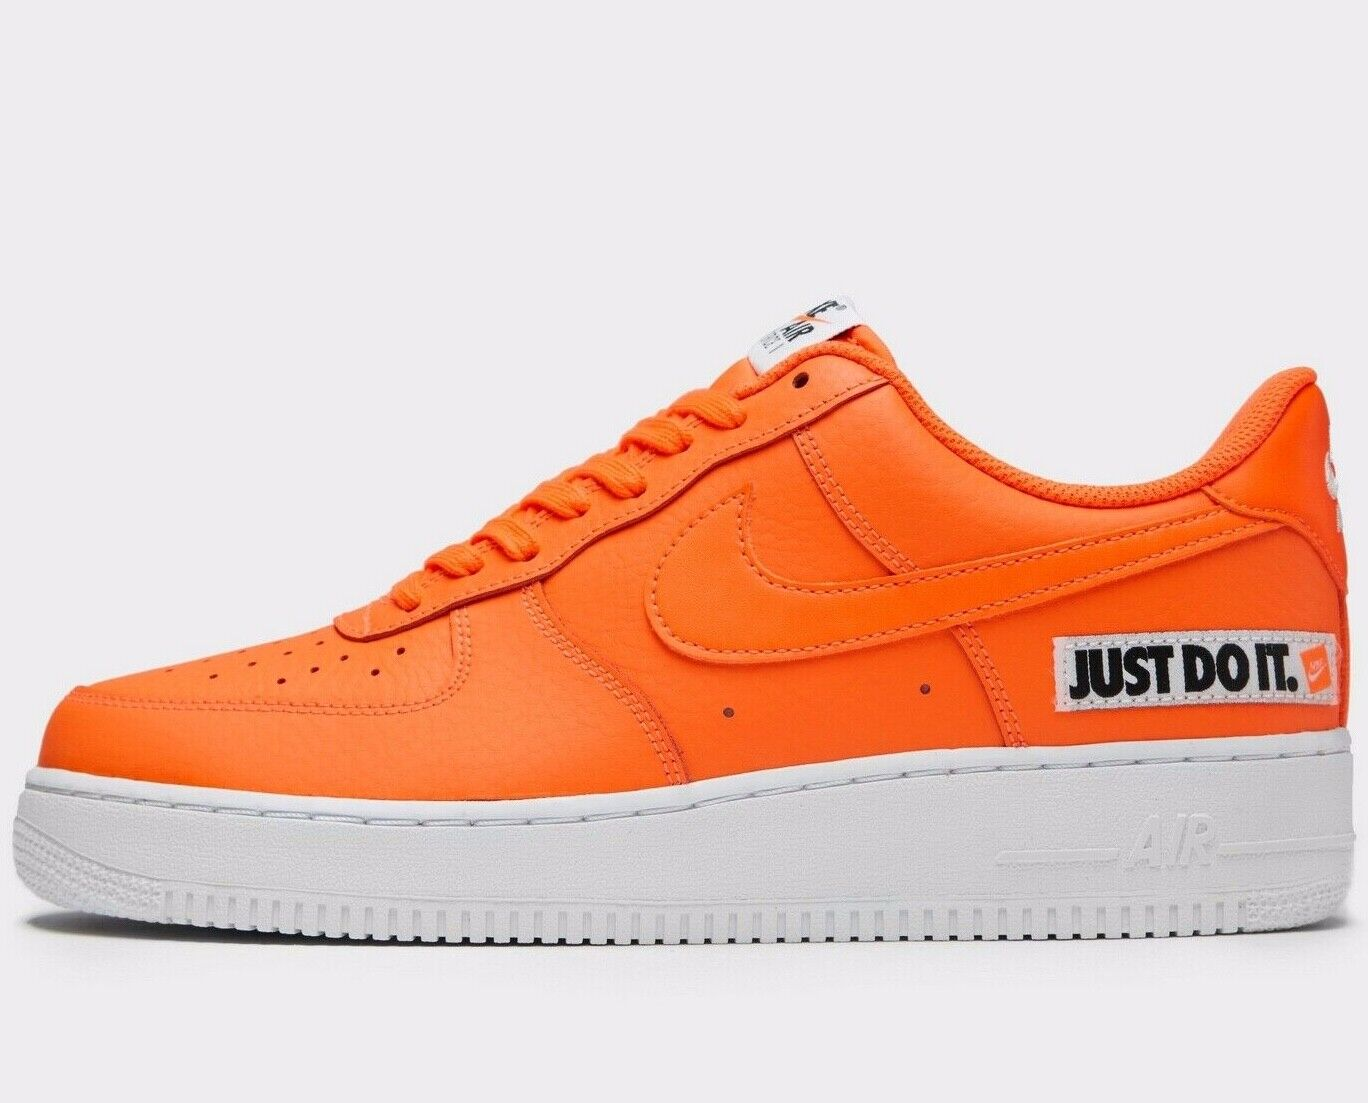 NEW Nike Air Force 1 Low 'Just Do It' ® ( Men Größes UK 7 -12 ) Orange leather